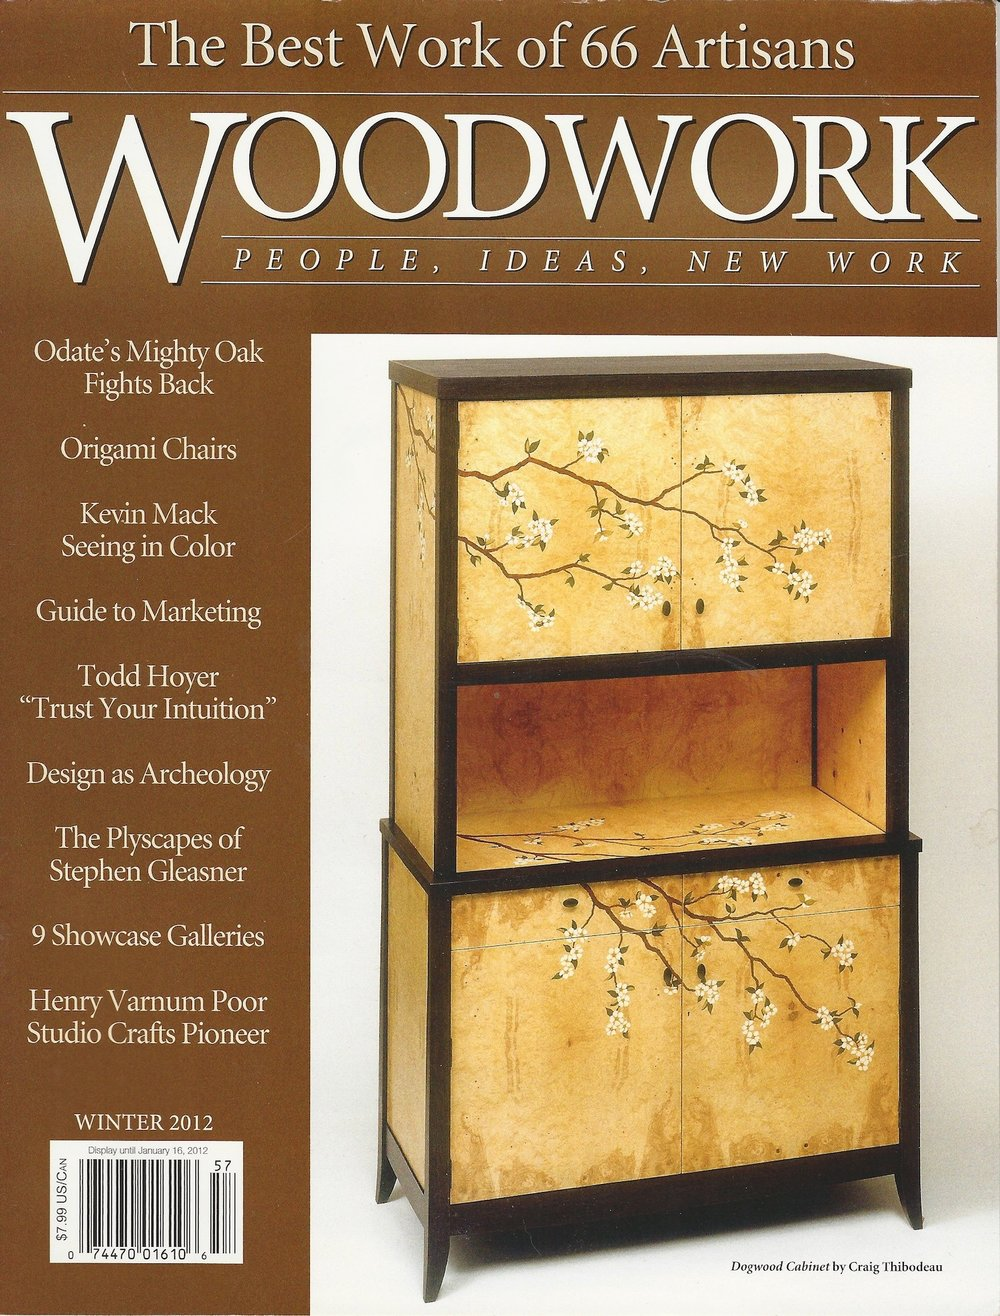 woodwork cover.jpg